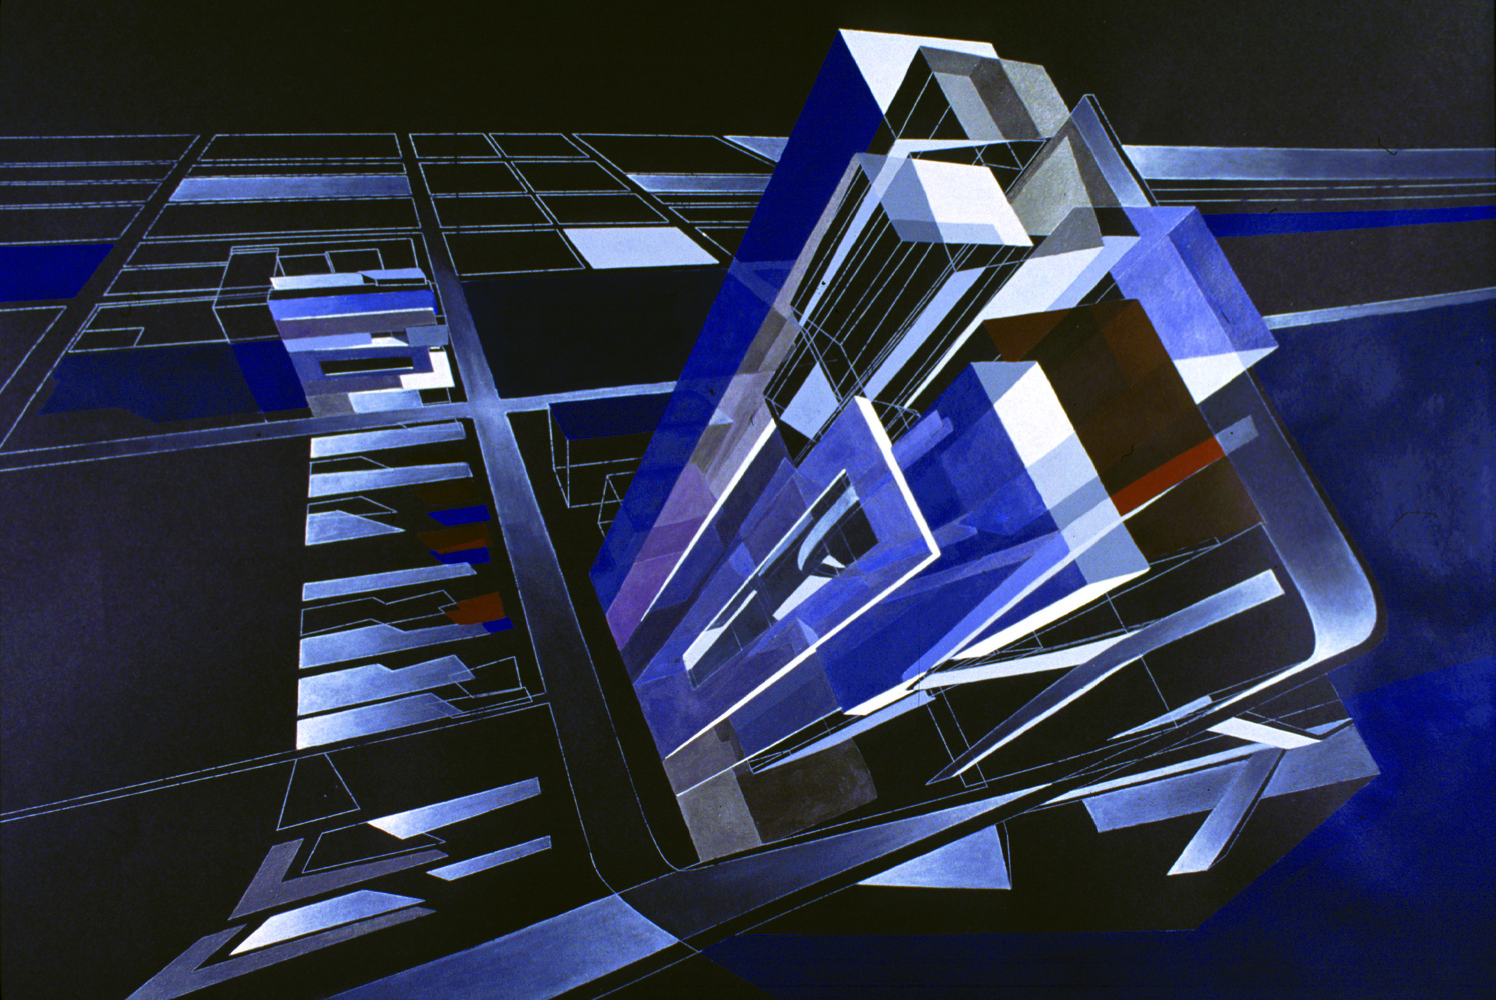 Rosenthal Center for Contemporary Art, 2003. Acrylique sur toile. © Zaha Hadid